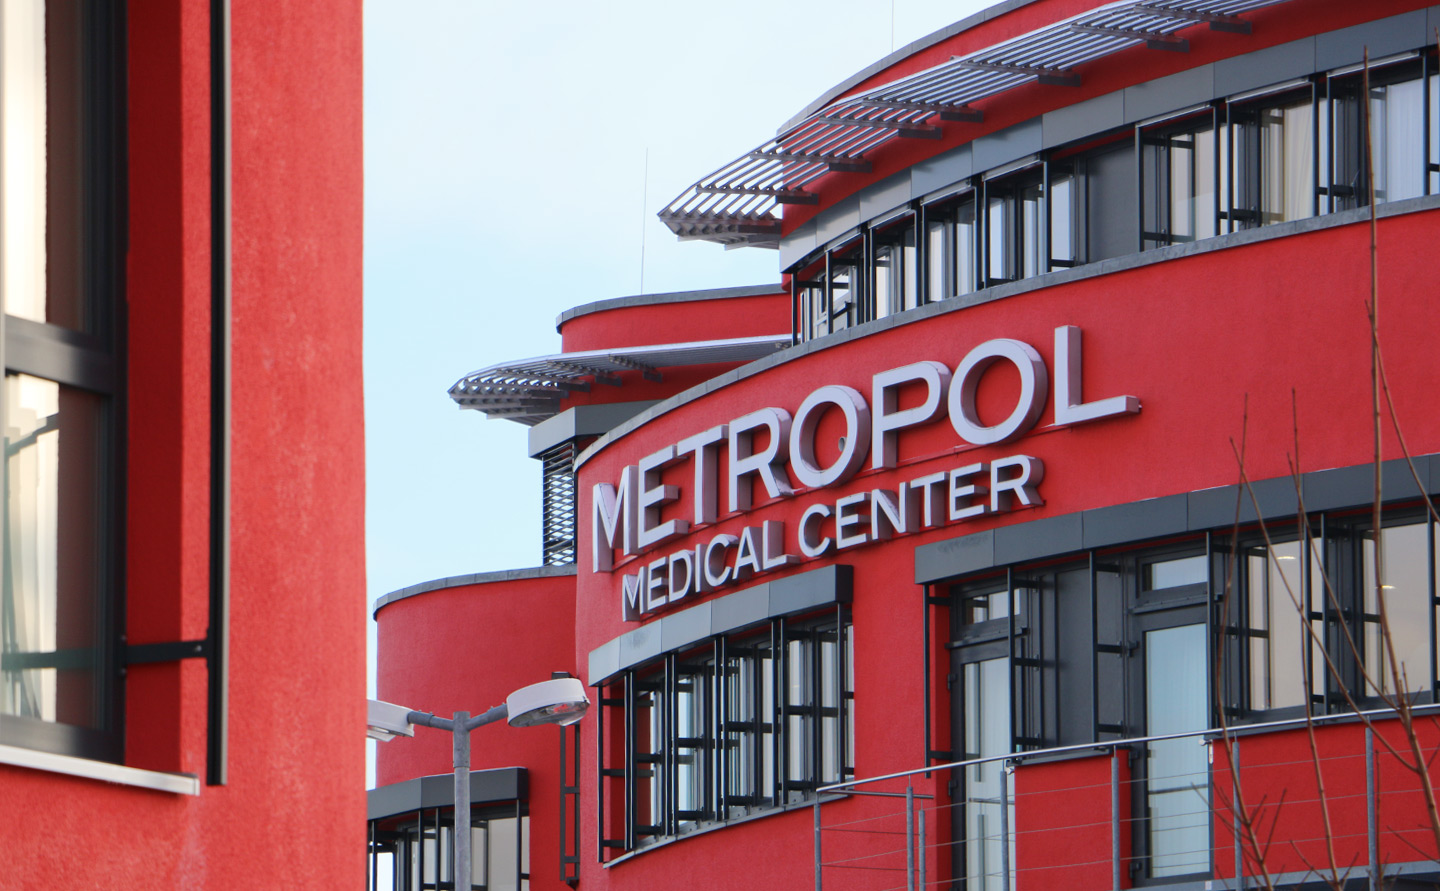 Metropol Medical Center Nürnberg